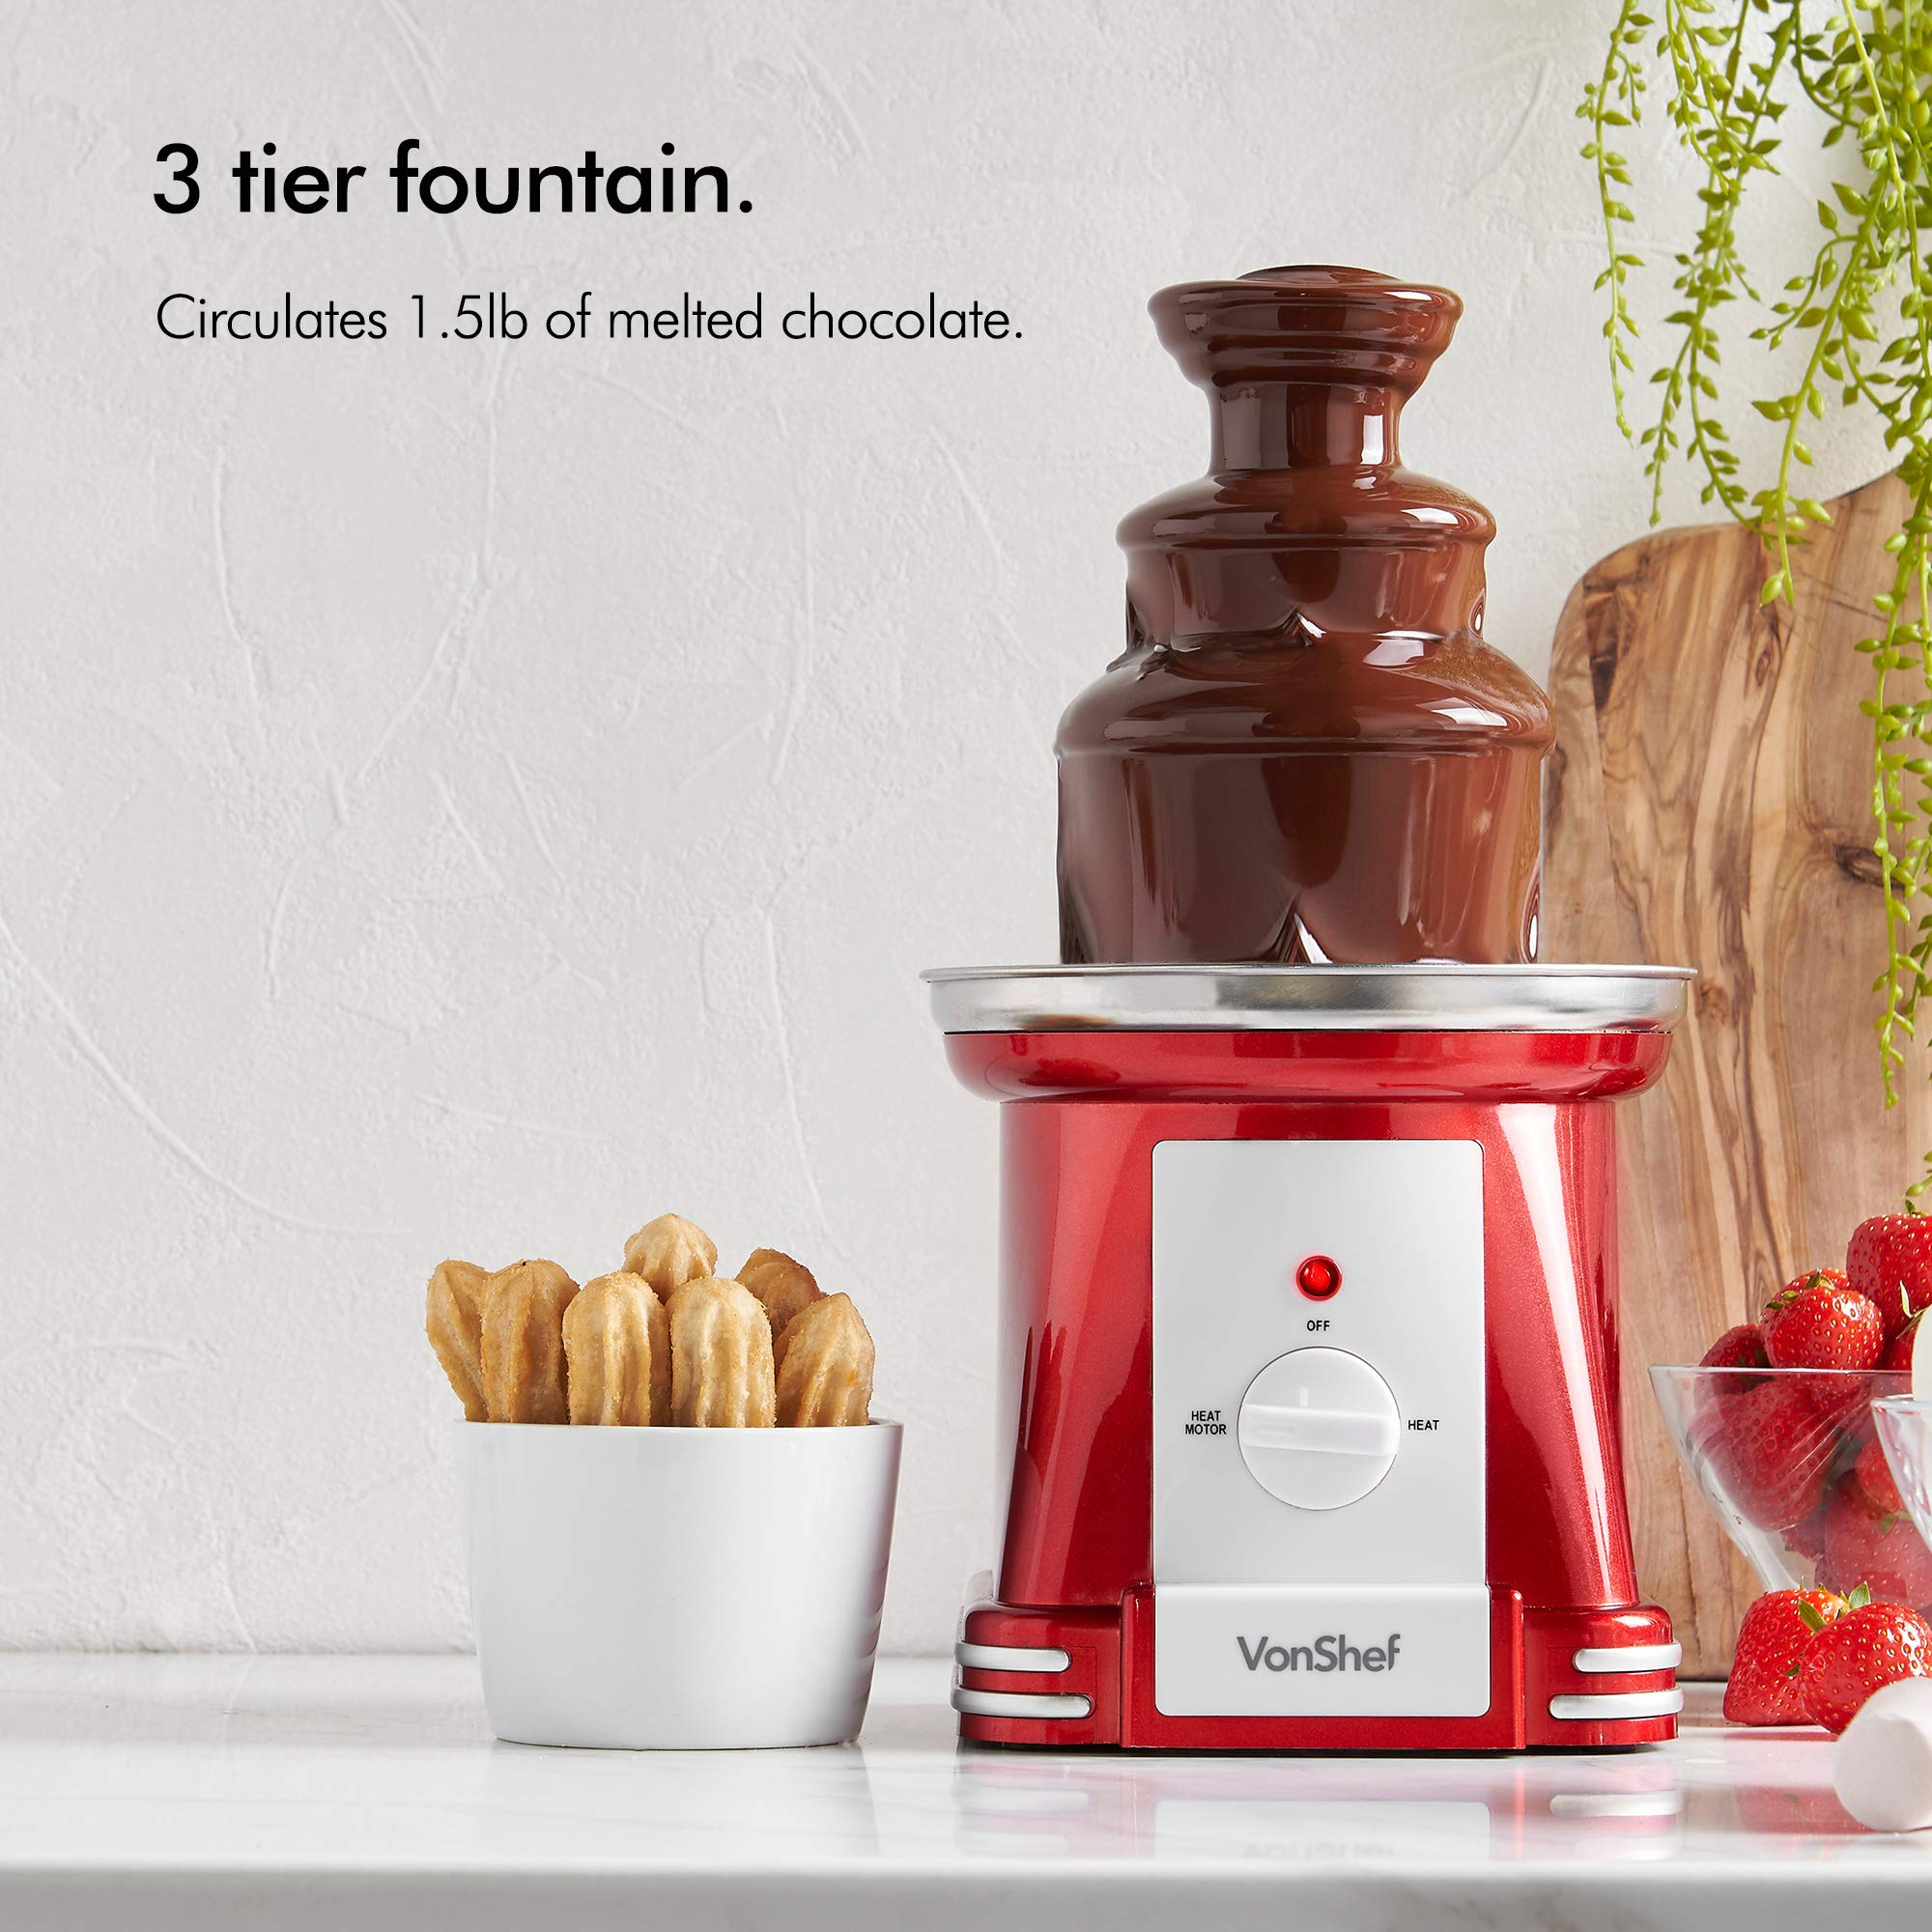 VonShef Retro Electric Chocolate Fountain Machine – 3 Tier Chocolate Fondue Maker with Quiet Motor for Dessert/Dipping for Parties, Weddings by VonShef (Image #2)